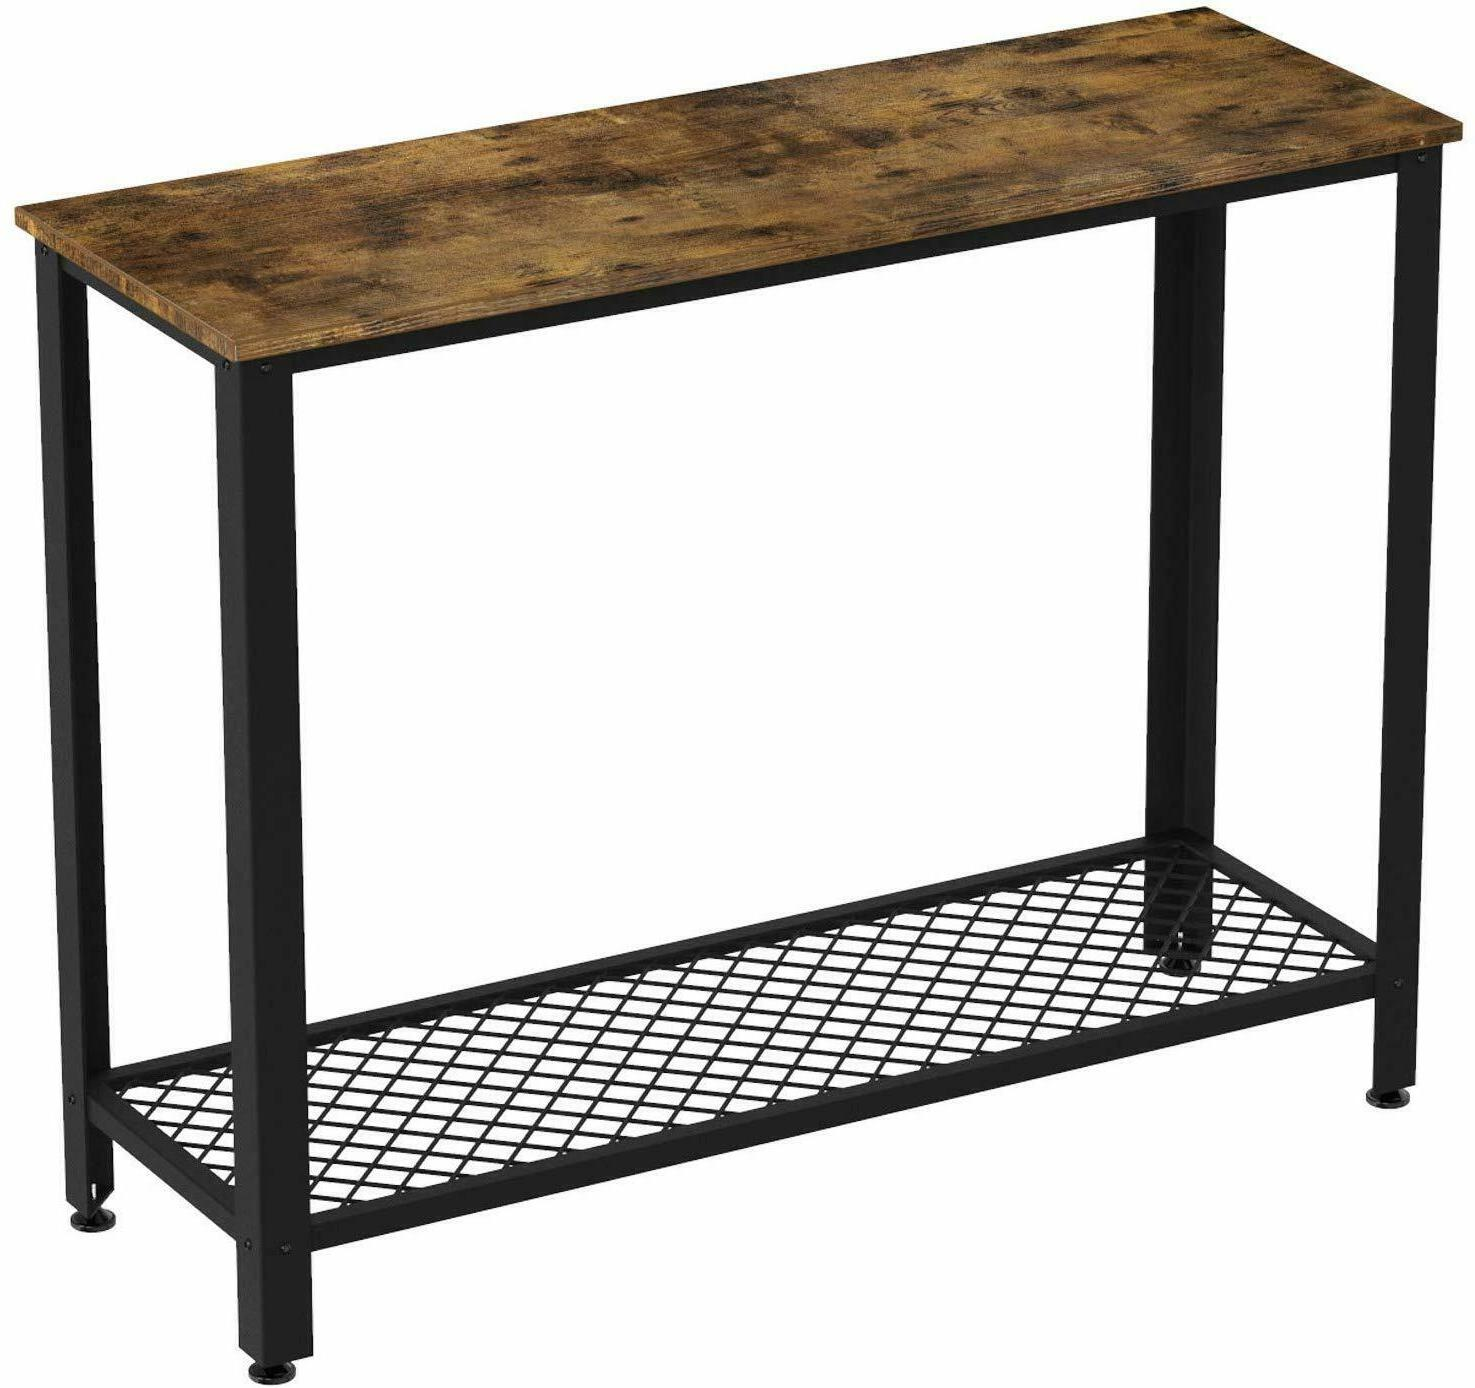 IRONCK Vintage Console for Entryway, Entry with Shelf Easy Assembly